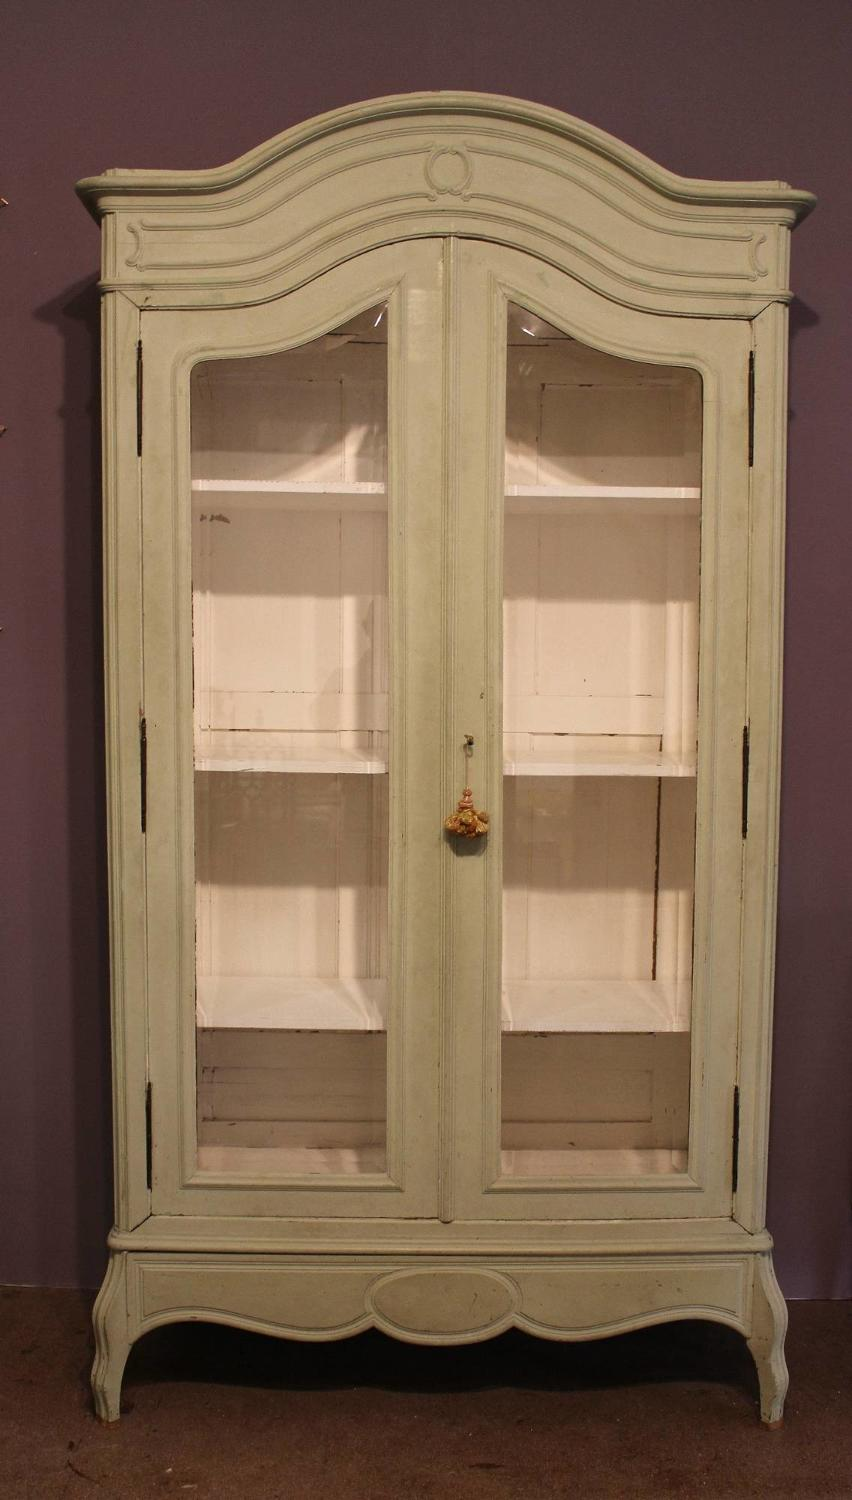 Antique Painted French Glazed Armoire / Cabinet